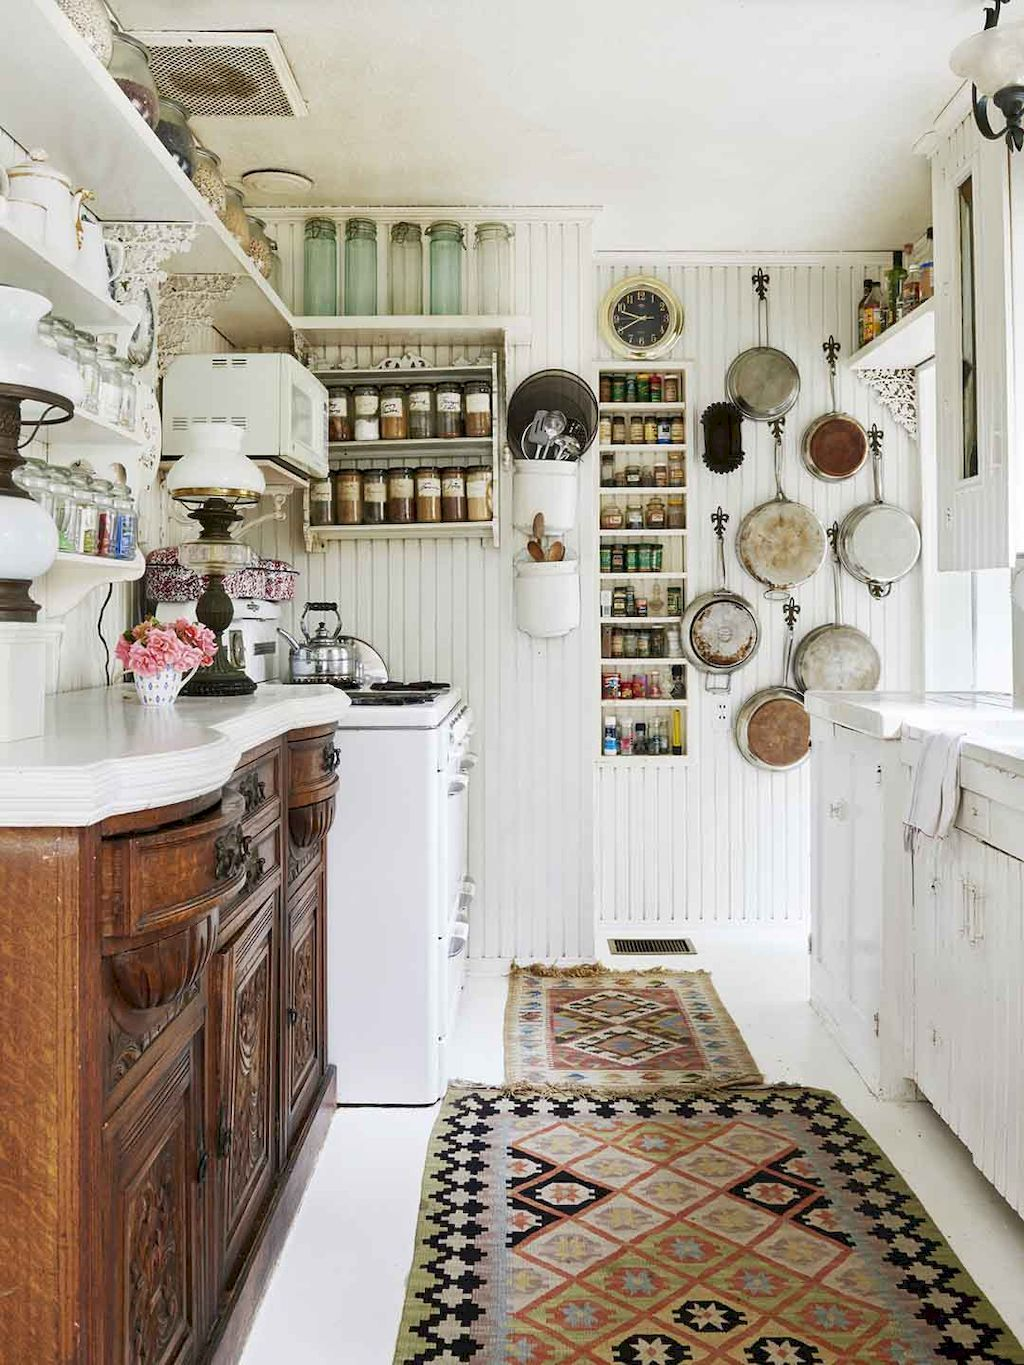 Nice 9 Eclectic Kitchen Ideas Decor https://livingmarch.com/top